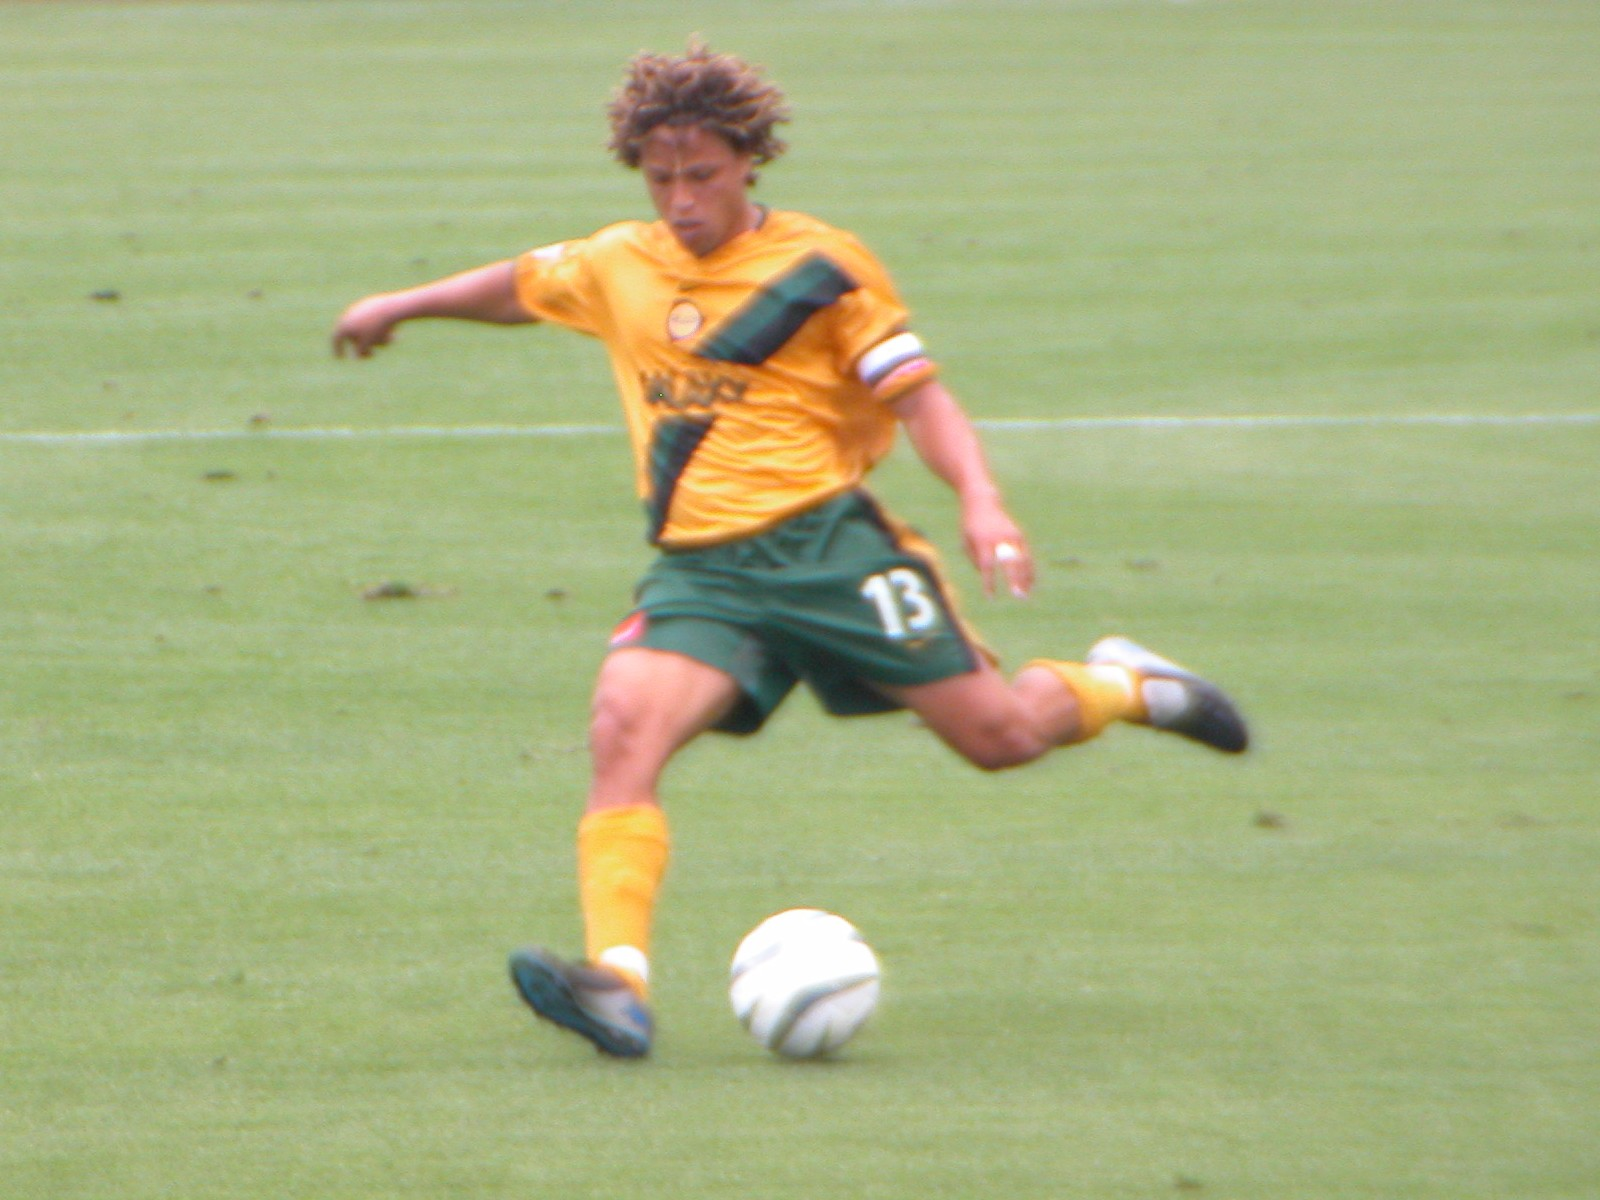 File:CobiJones.jpg - Wikimedia Commons